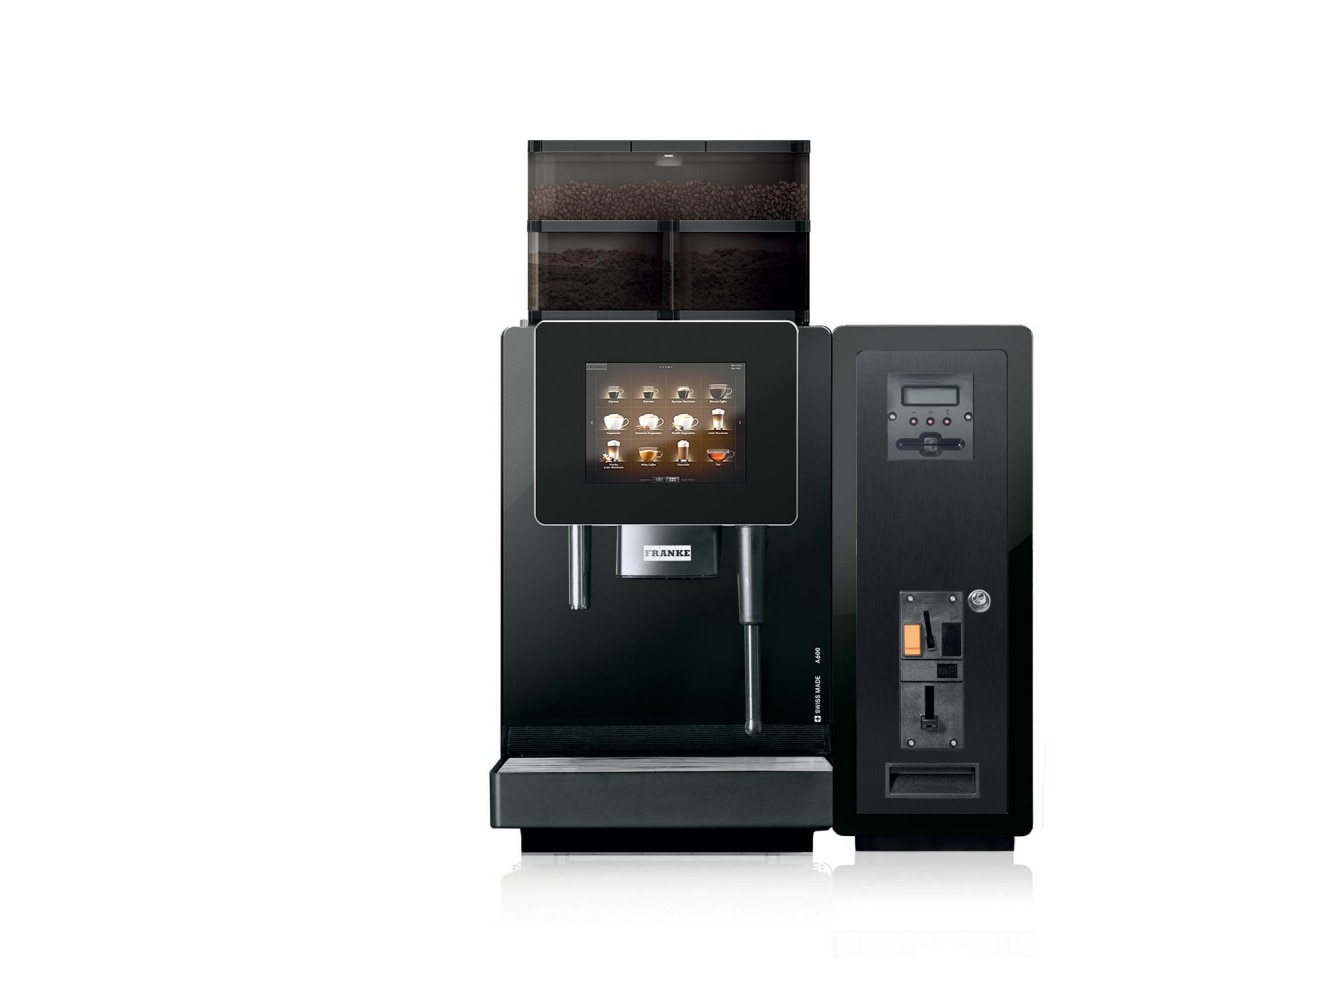 Kaffeevollautomat Kaufen Automatic Coffee Machine A600 | Franke Coffee Systems